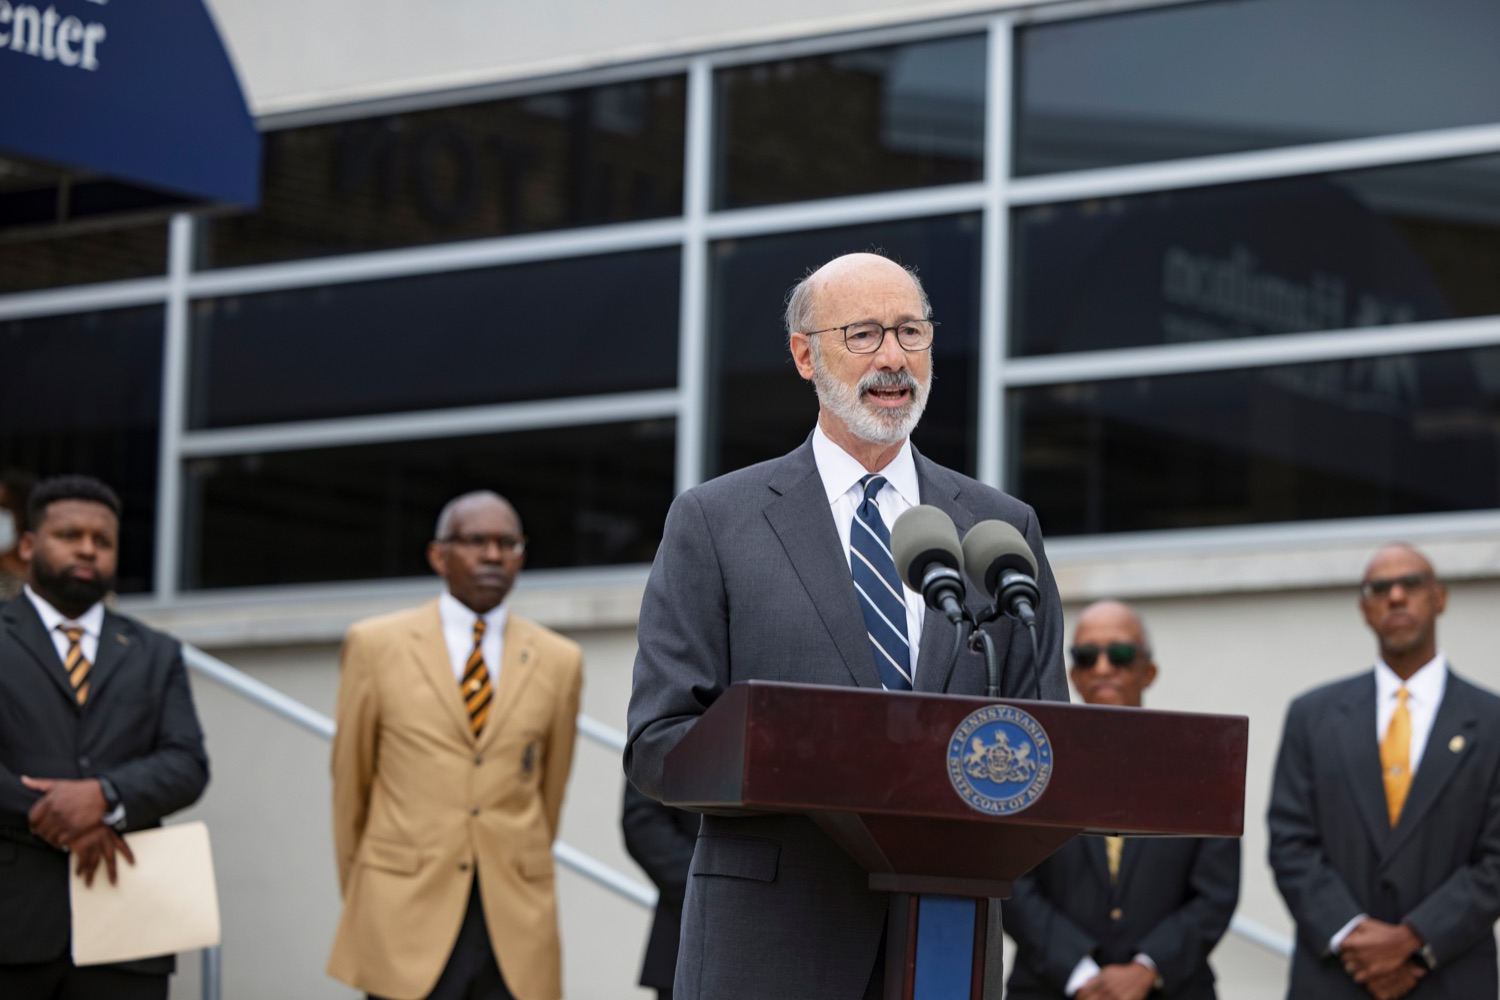 """<a href=""""https://filesource.wostreaming.net/commonwealthofpa/photo/20119_GOV_Vaccines_NK_016.jpg"""" target=""""_blank"""">⇣Download Photo<br></a>PA Governor Tom Wolf speaks during a press conference, which encouraged eligible Pennsylvanians who are not yet vaccinated to take advantage of their upcoming community COVID-19 vaccine clinic in partnership with the Zeta Theta Lambda Chapter of Alpha Phi Alpha fraternity, outside Hamilton Health Center in Harrisburg on Wednesday, October 6, 2021. The clinic will run on Saturday, October 9, COVID-19 vaccinations will be offered from 10am  2pm at Hamilton Health Center, 100 S. 17th St., Harrisburg, PA 17104."""